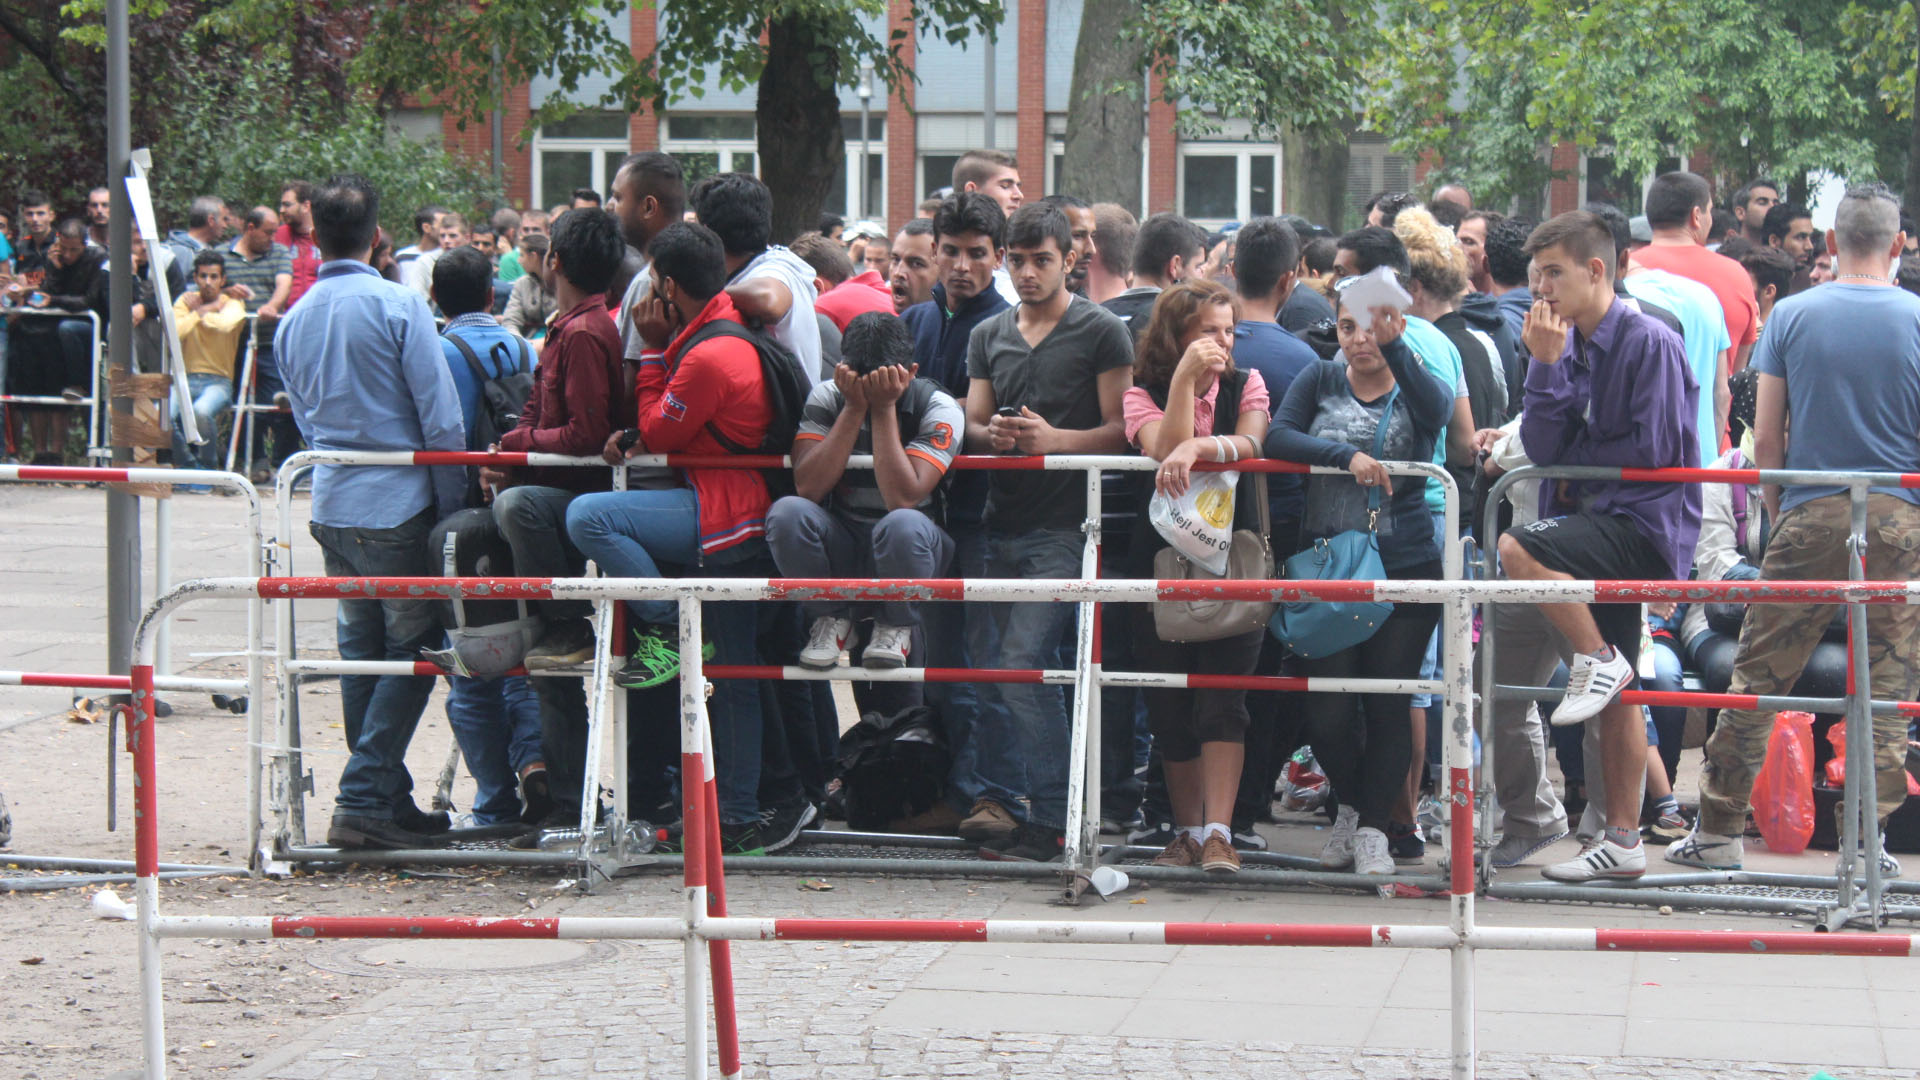 Recently arrived asylum seekers queue up to register with the Berlin State Office of Health and Welfare in Germany on 27 August, 2015